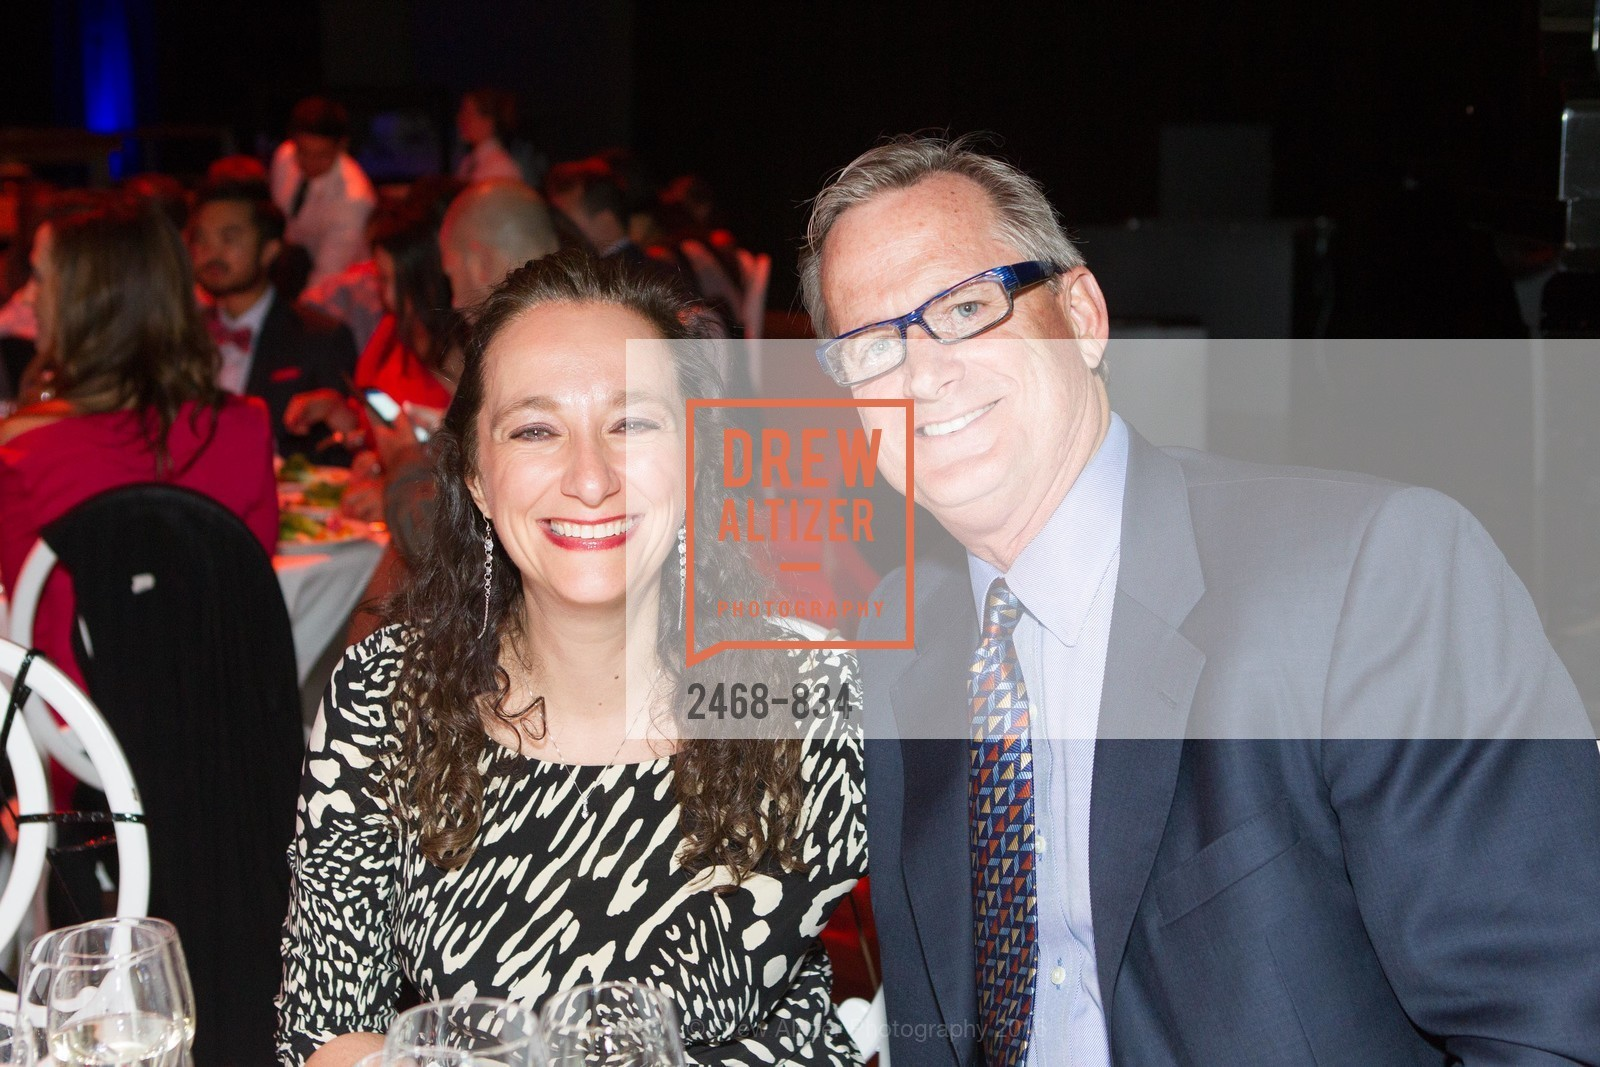 Laura Zander, Mark Ruggles, Exploratorium Spring Gala, Exploratorium, 140515, May 15th, 2014,Drew Altizer, Drew Altizer Photography, full-service agency, private events, San Francisco photographer, photographer california